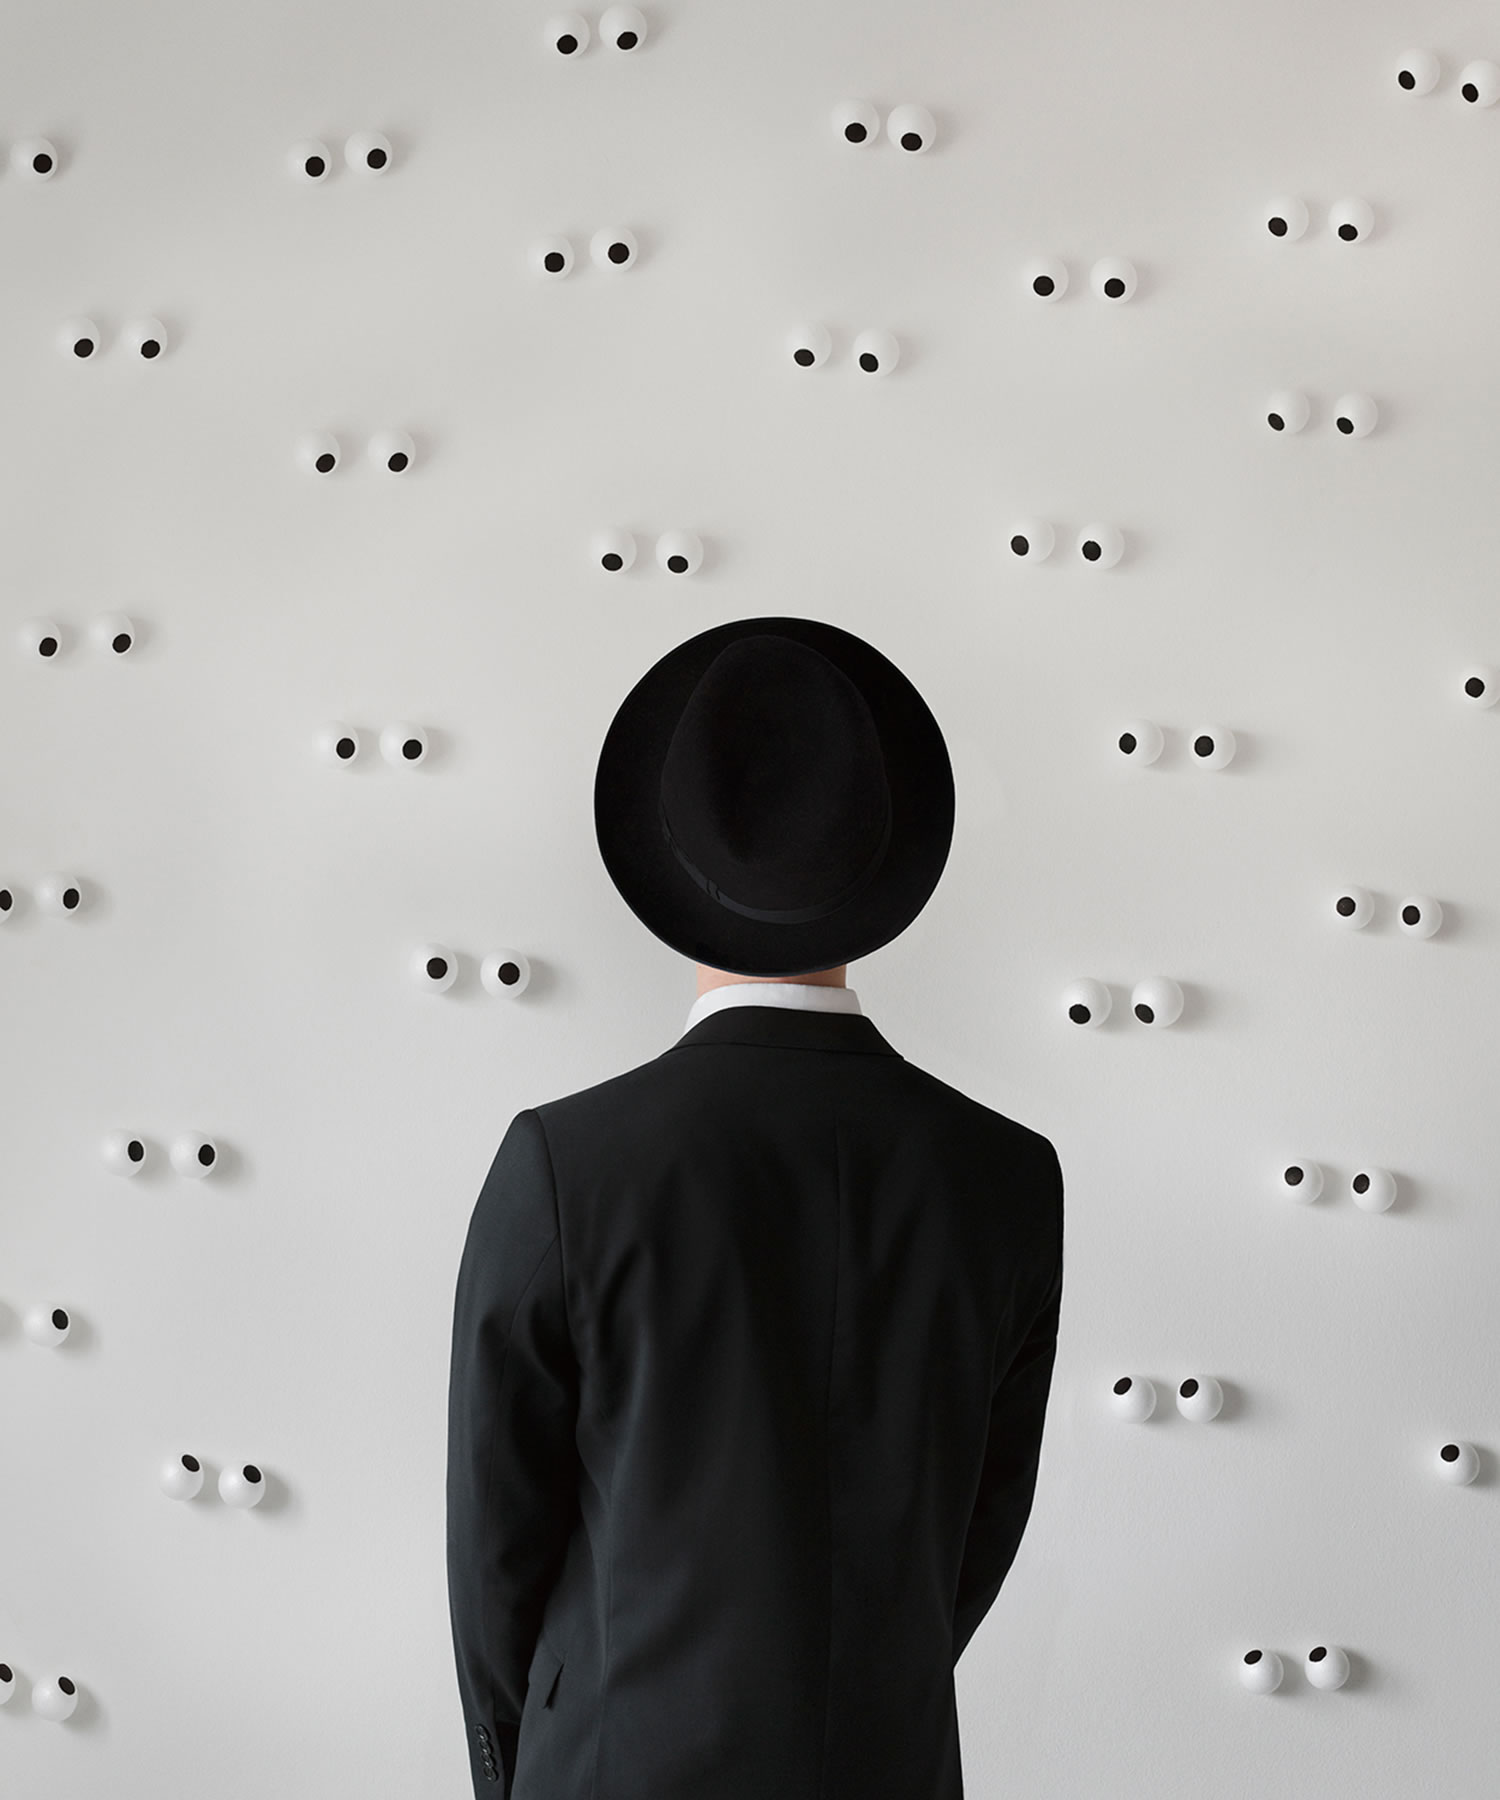 surveillance by Marcus Møller Bitsch, man with hat, and googly eyes on wall